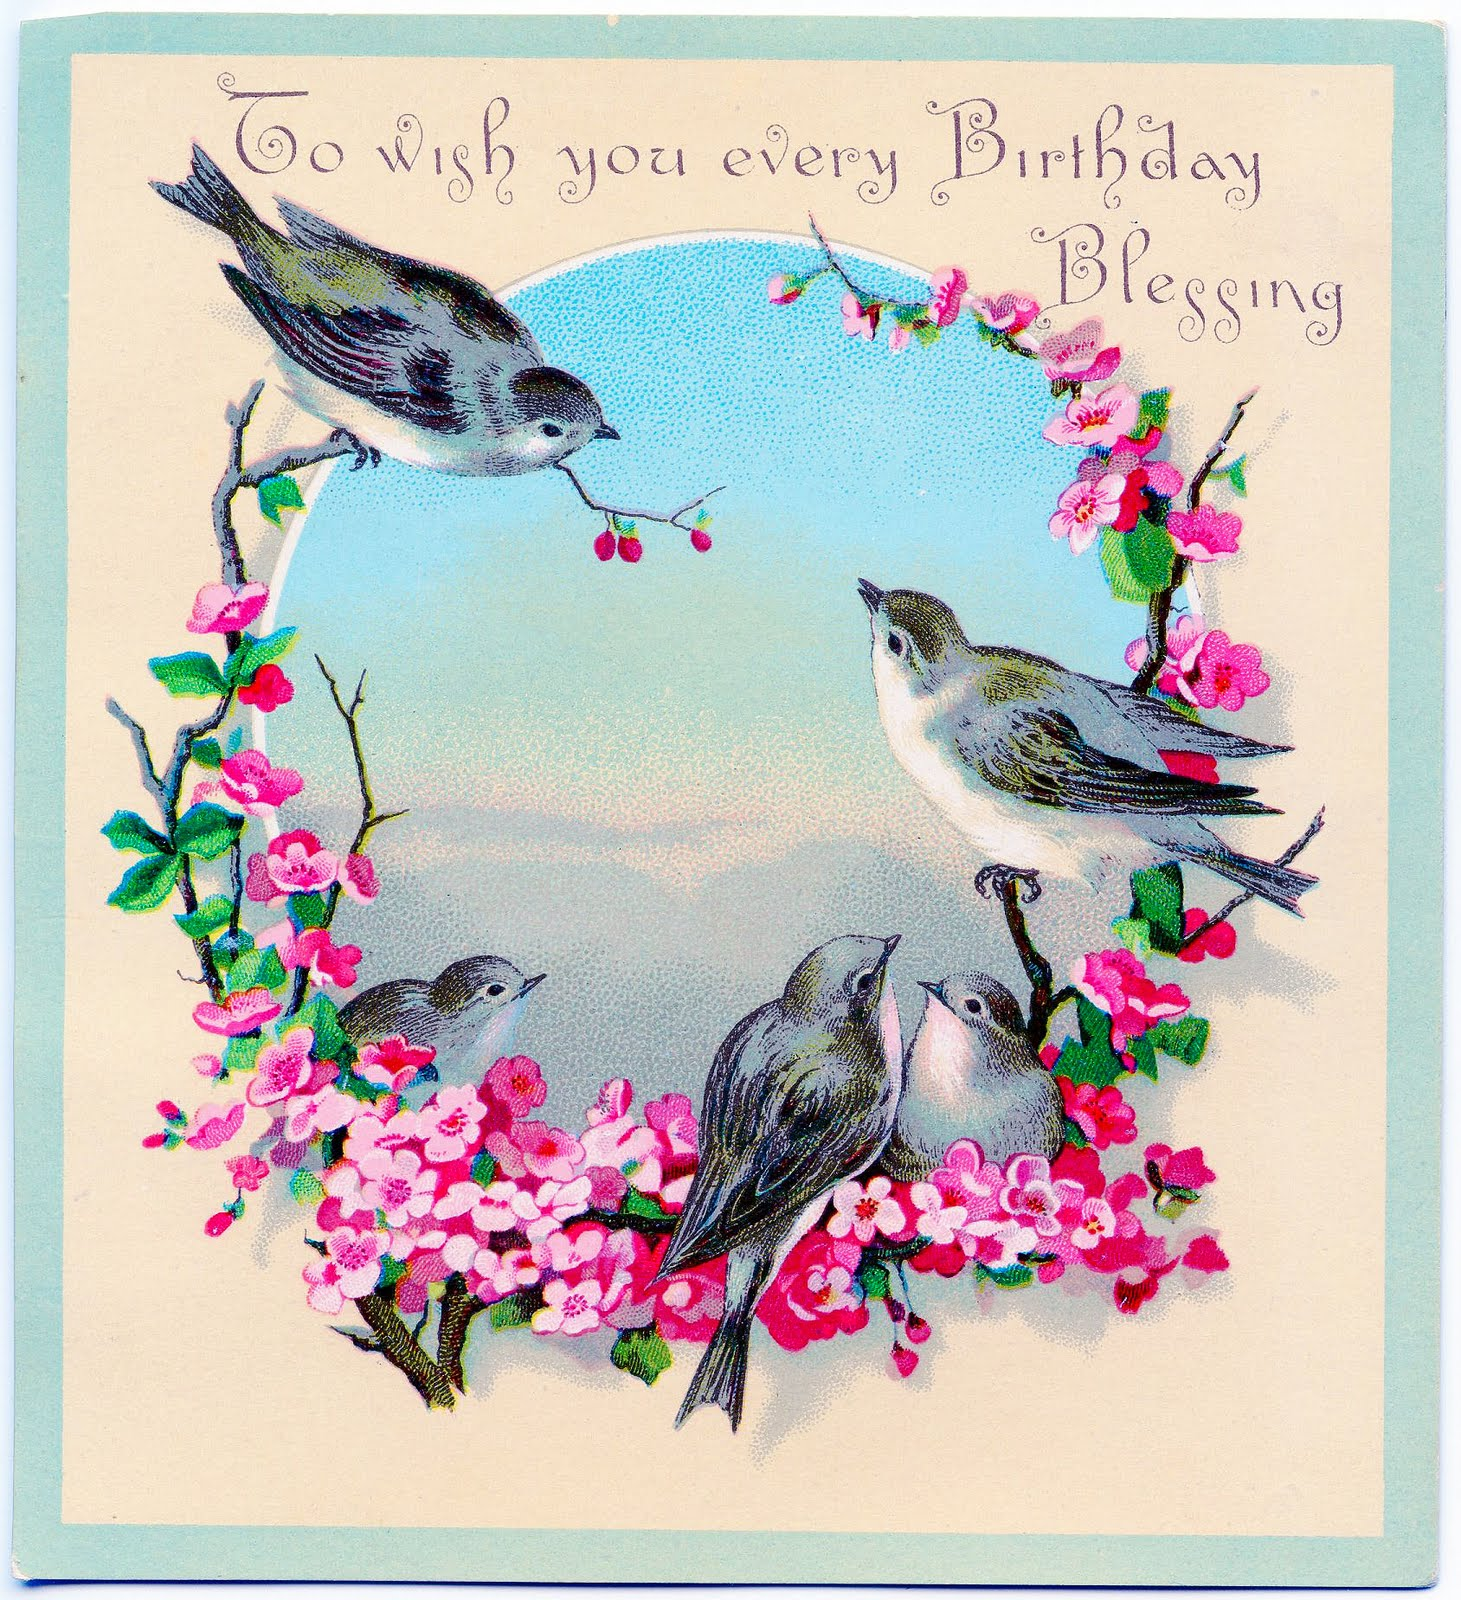 Vintage Clip Art Image - Sweet Birds with Flowers - Birthday Greeting - The Graphics Fairy